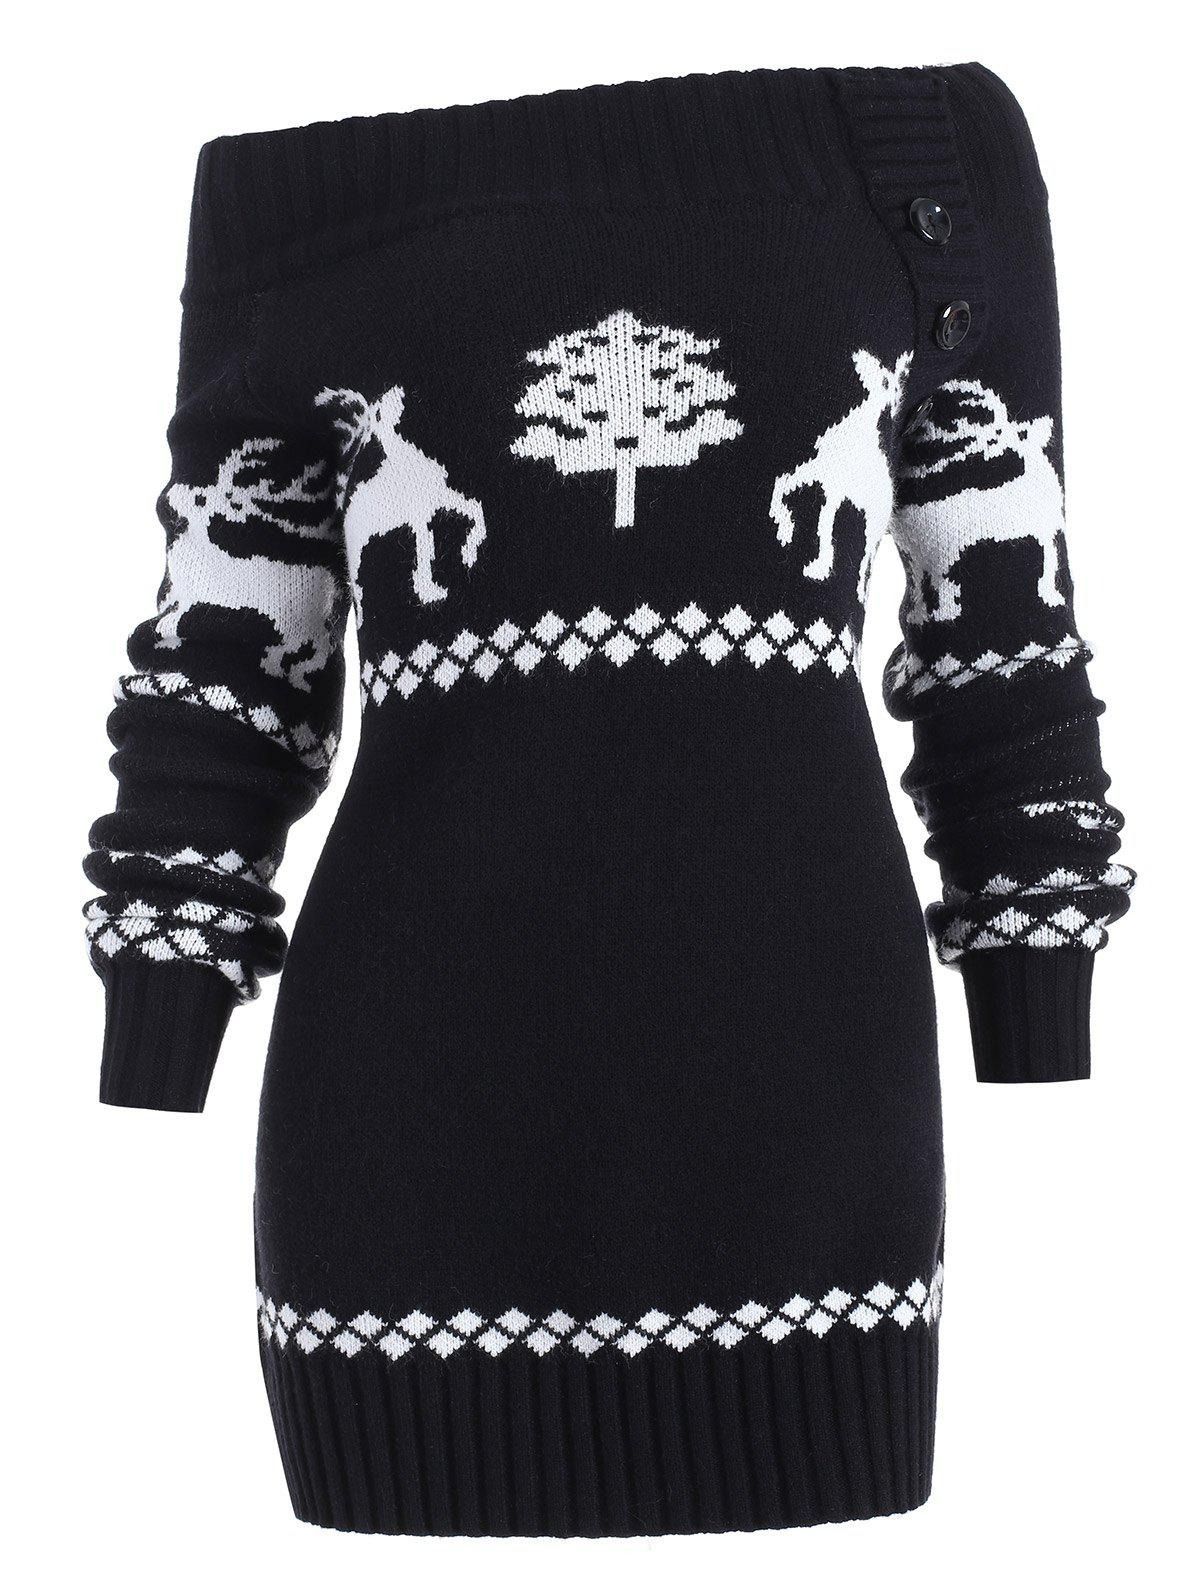 Chic Reindeer Off The Shoulder Knit Tunic Sweater